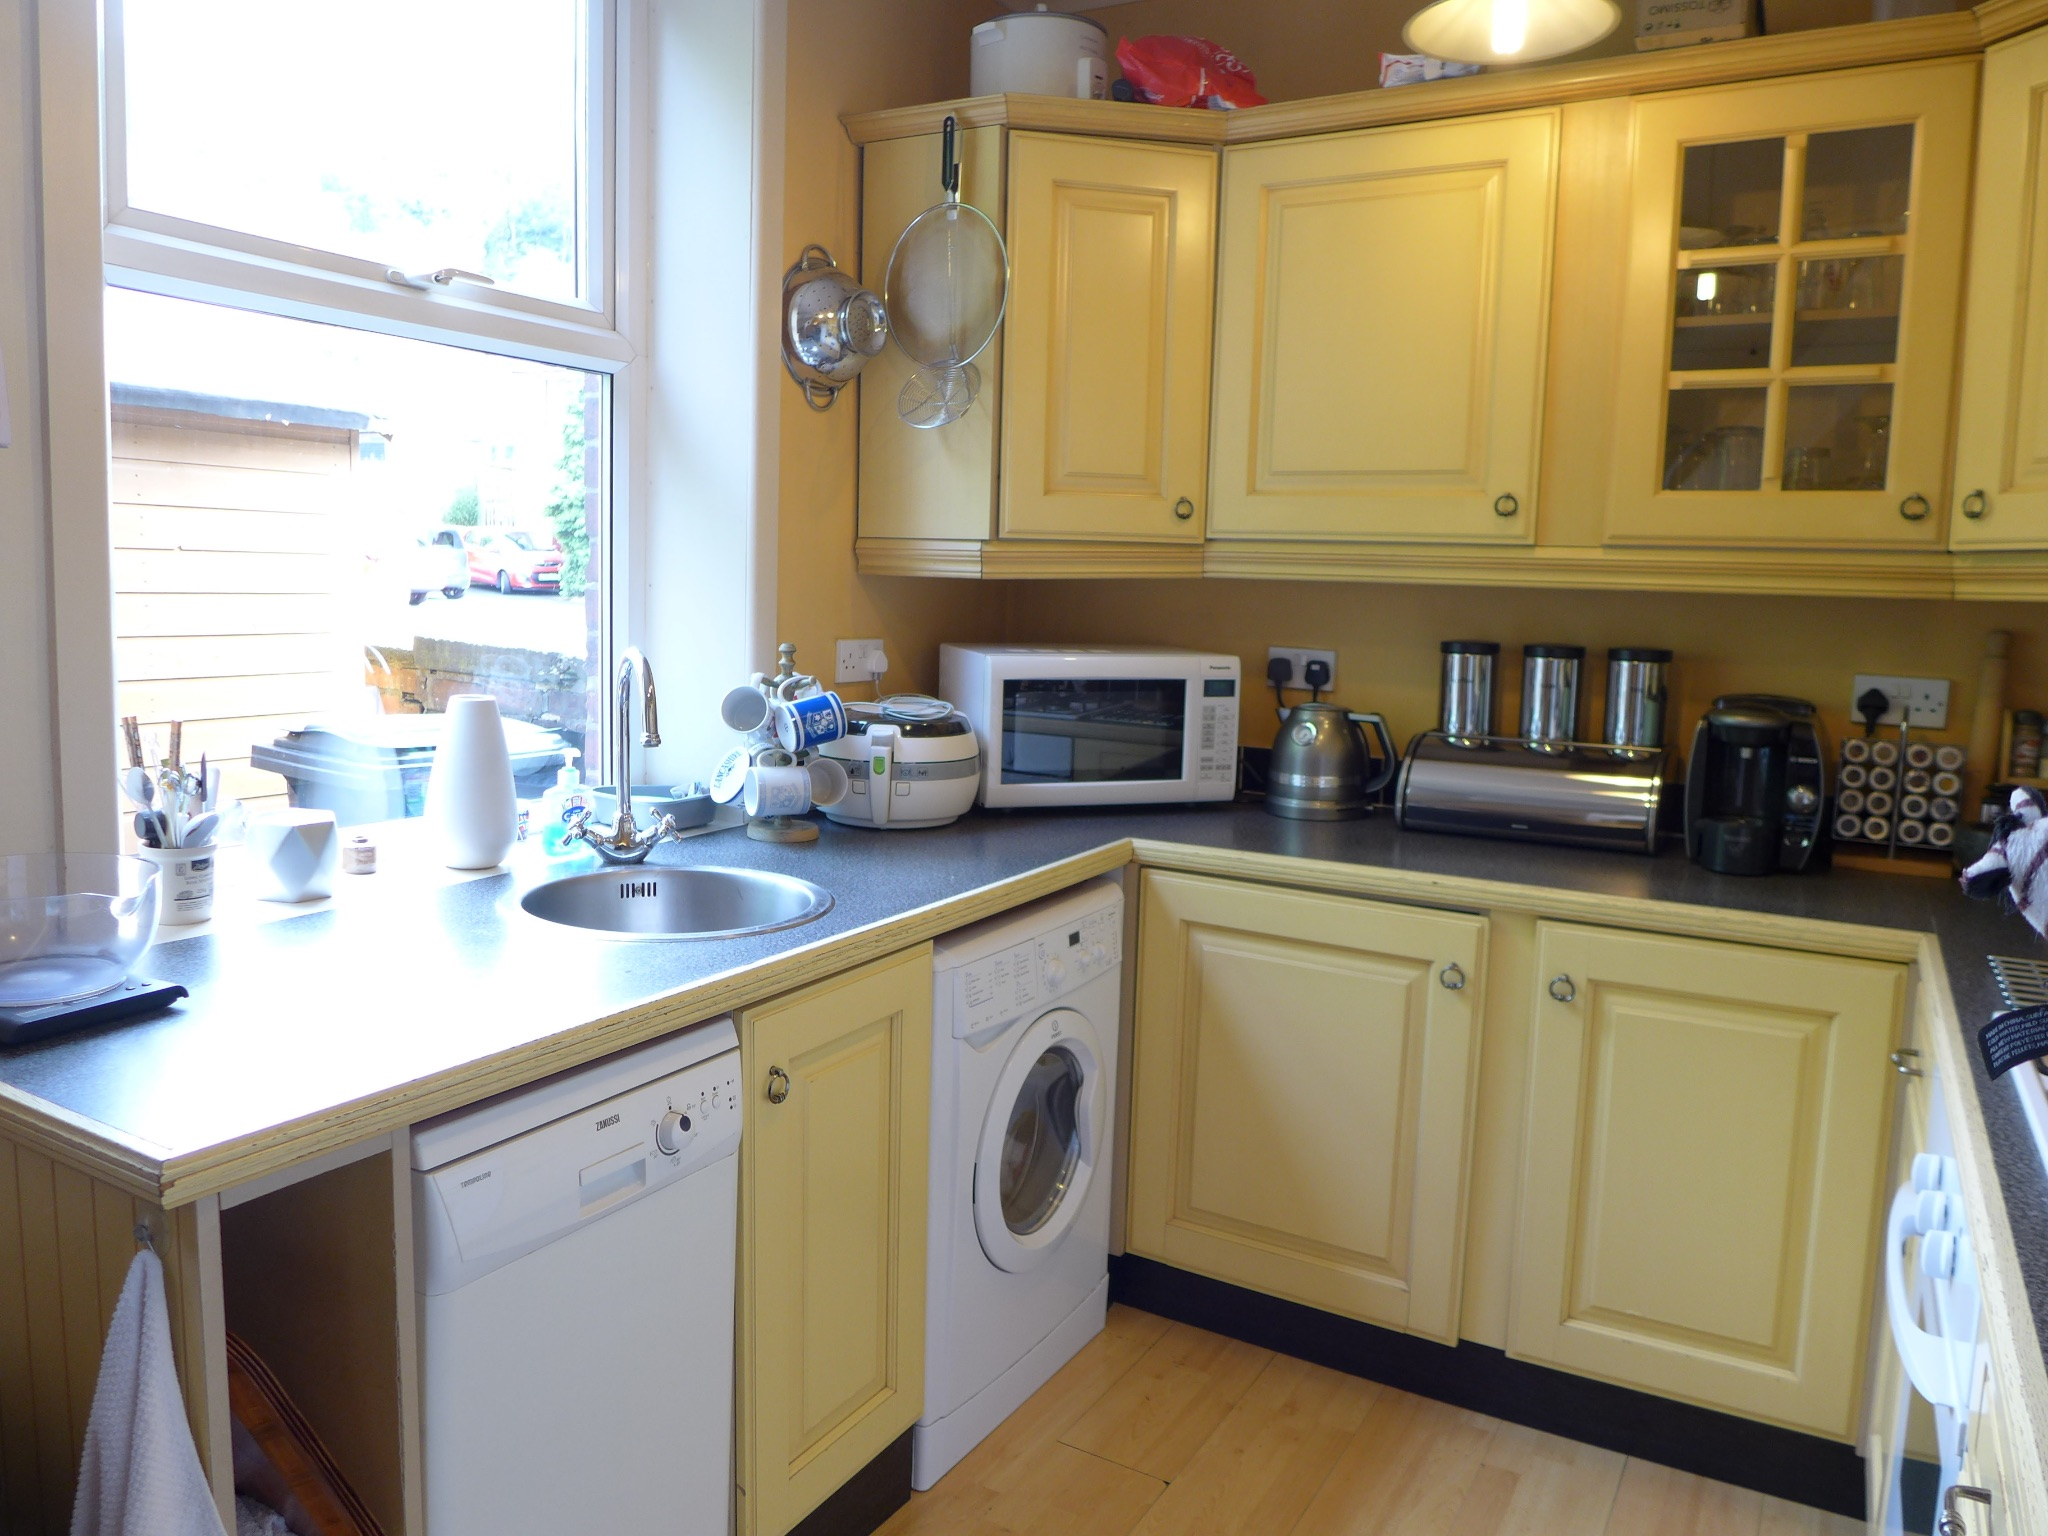 3 bedroom end terraced house For Sale in Todmorden - Photograph 7.